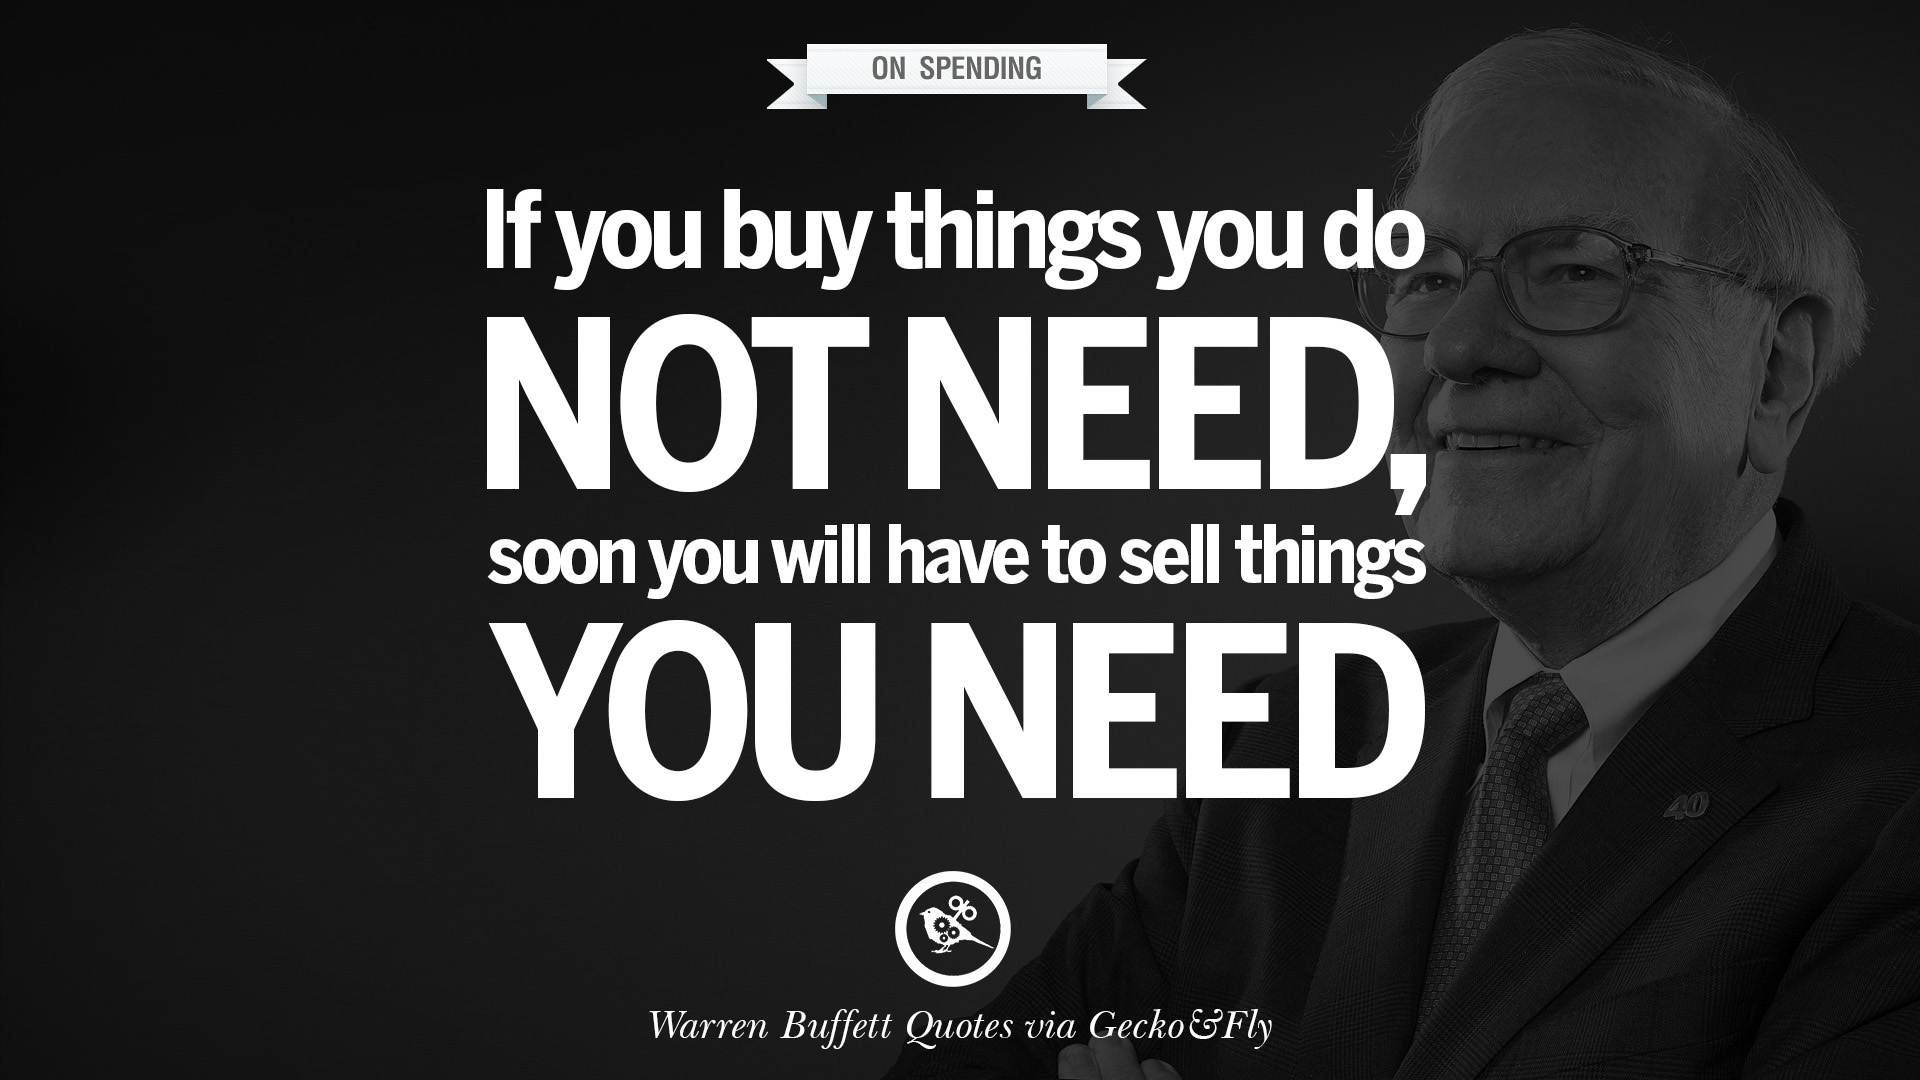 Expectations Quote Wallpapers 6 Investment Advices By Warren Buffet On Wealth Management